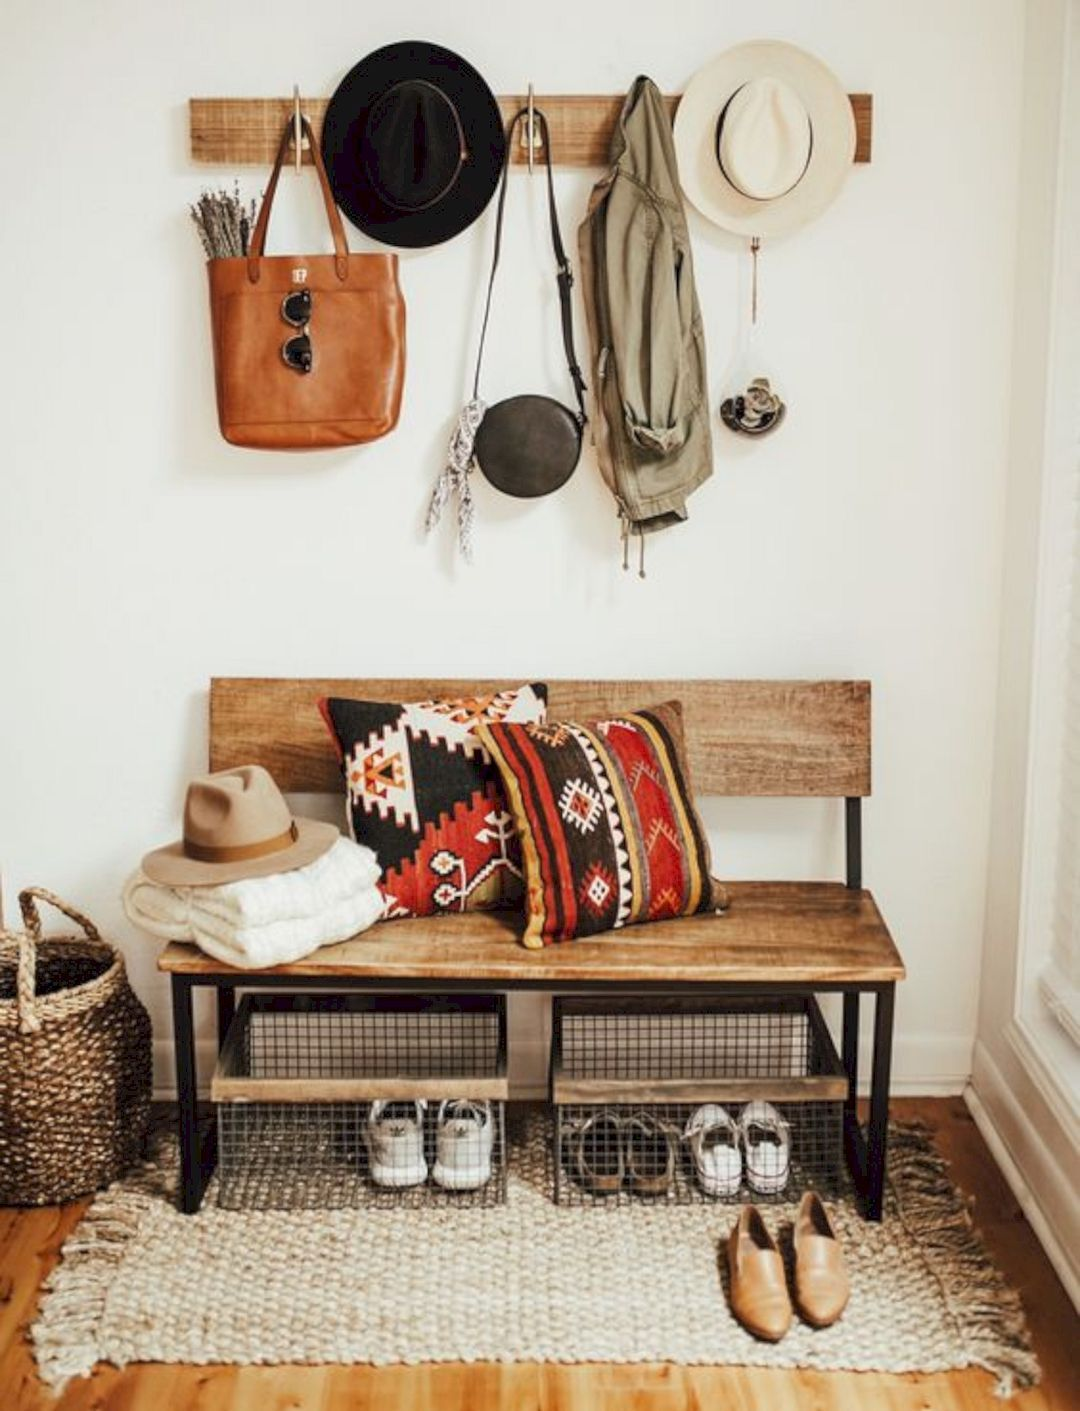 16 Simple Interior Design Ideas For Living Room: 16 Simple Furniture Ideas For Entryway